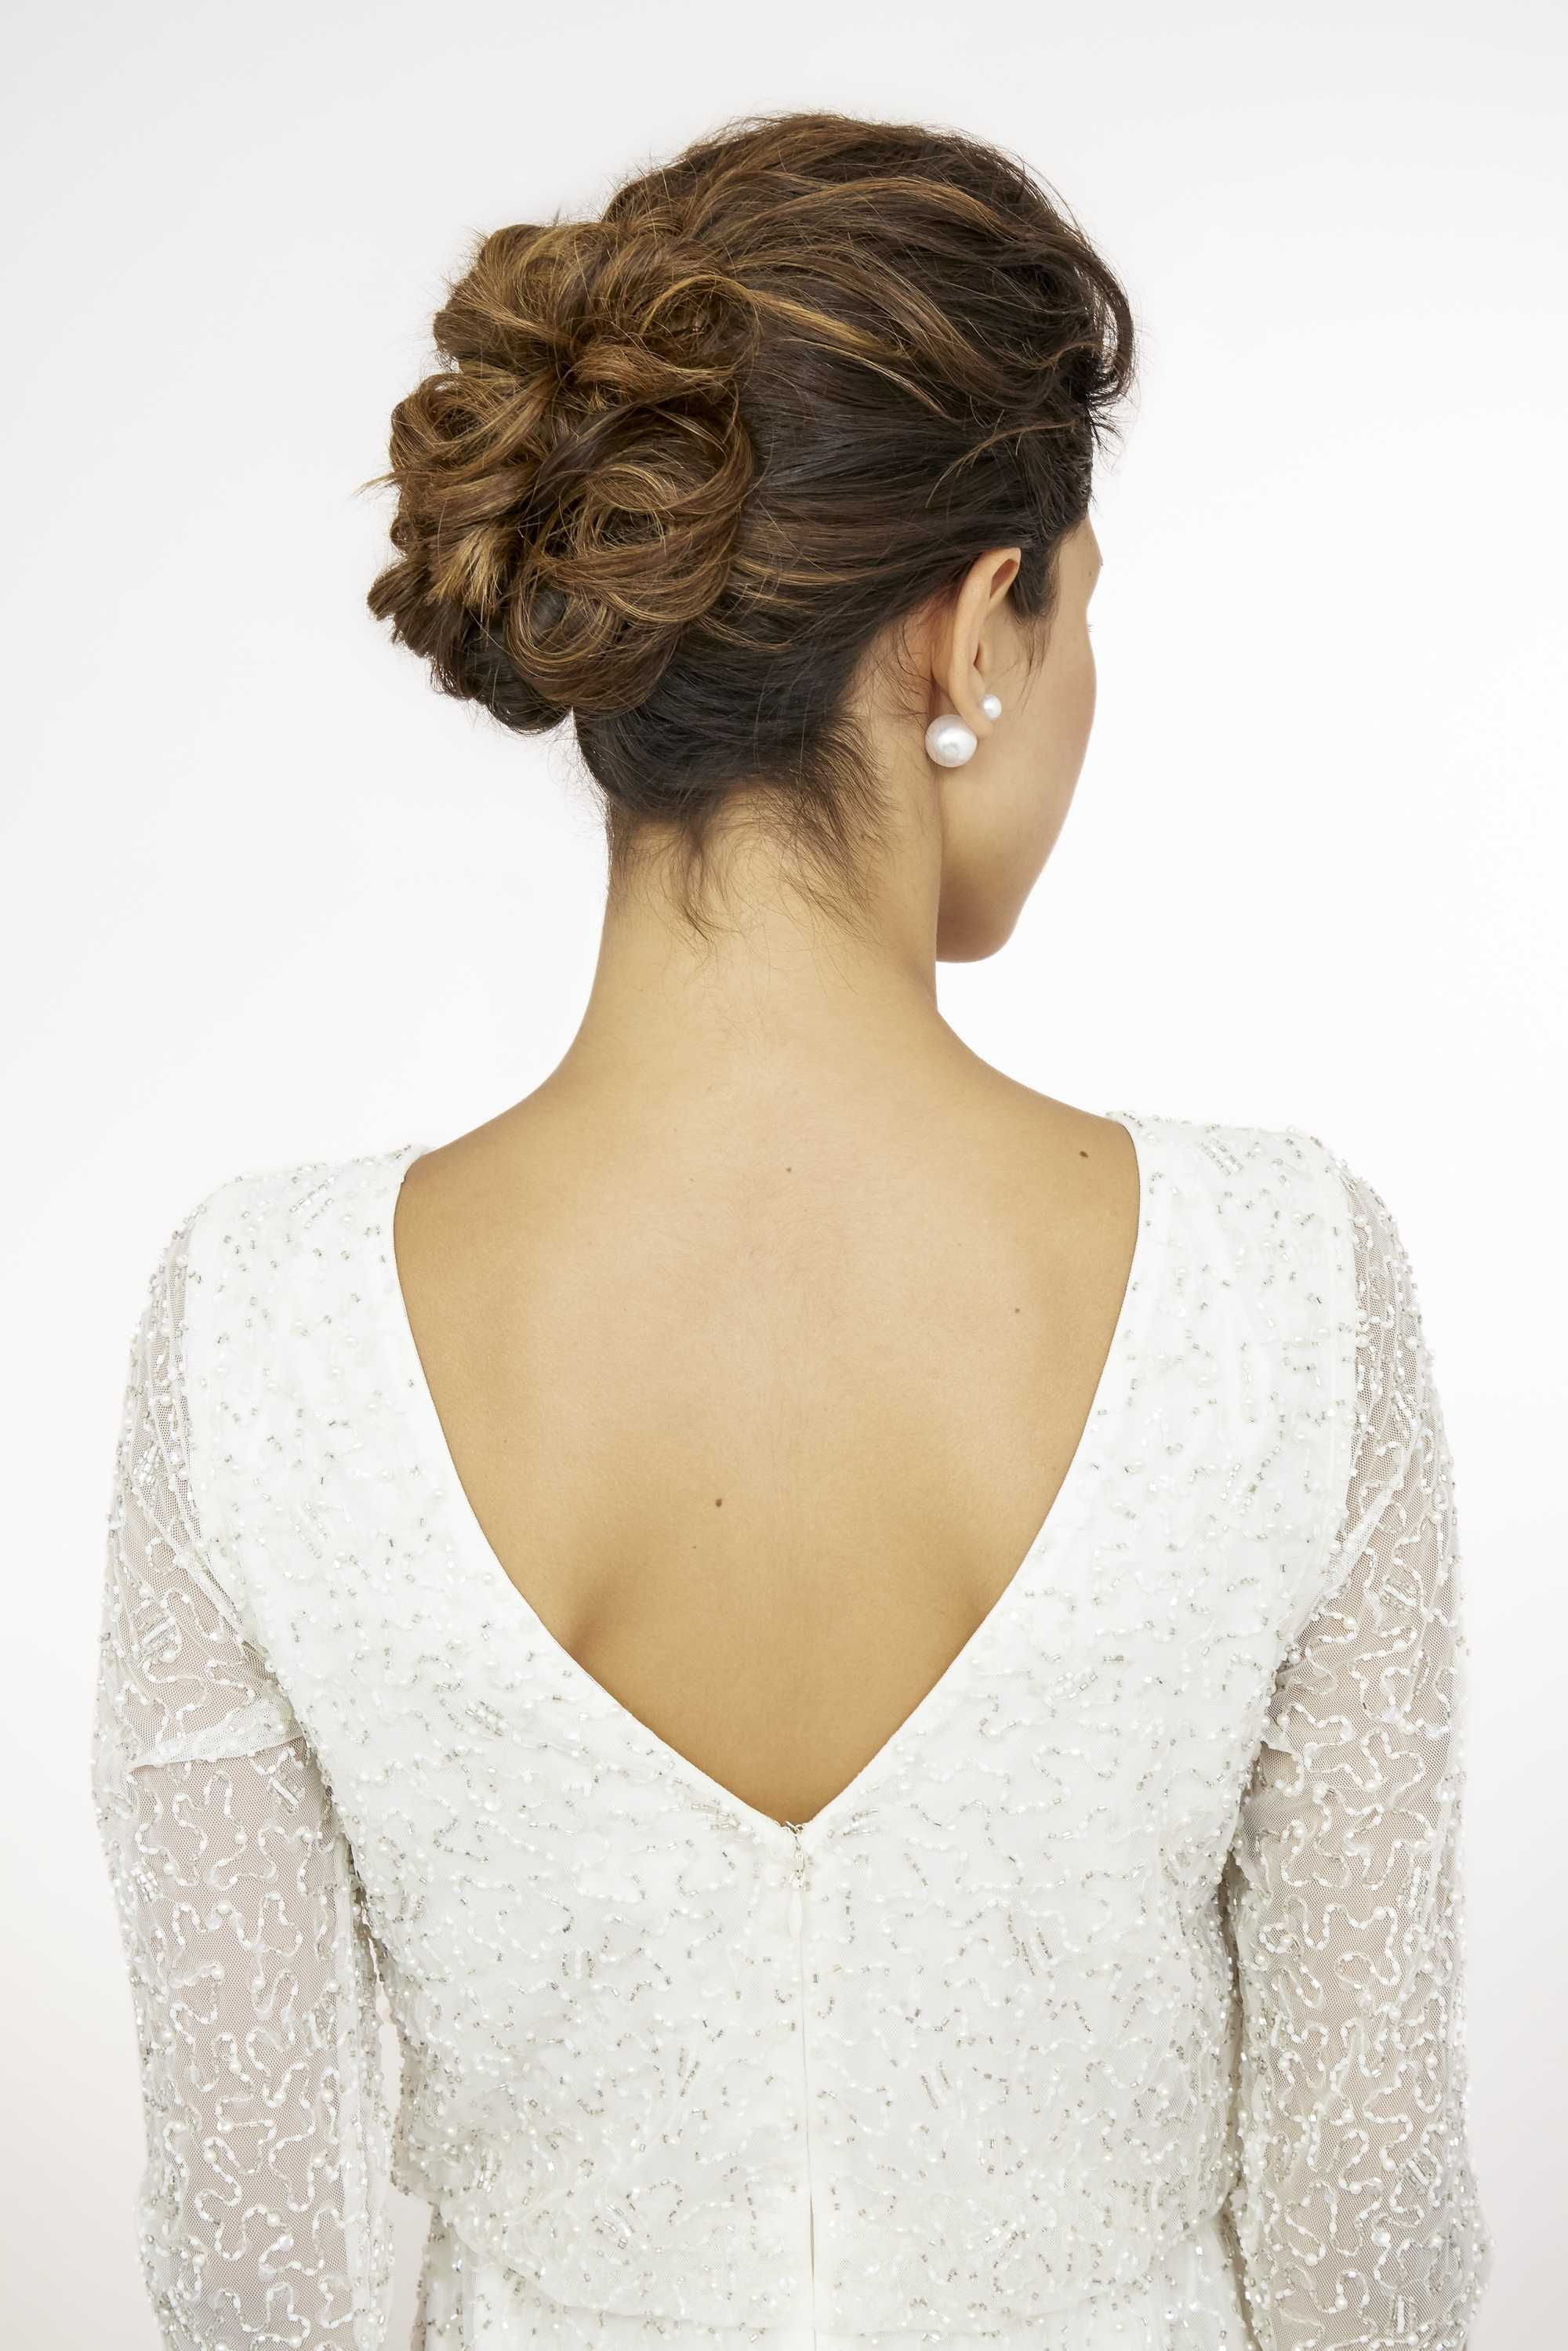 wedding updos: close up shot of model with wavy bridal updo, wearing white dress and posing in a studio